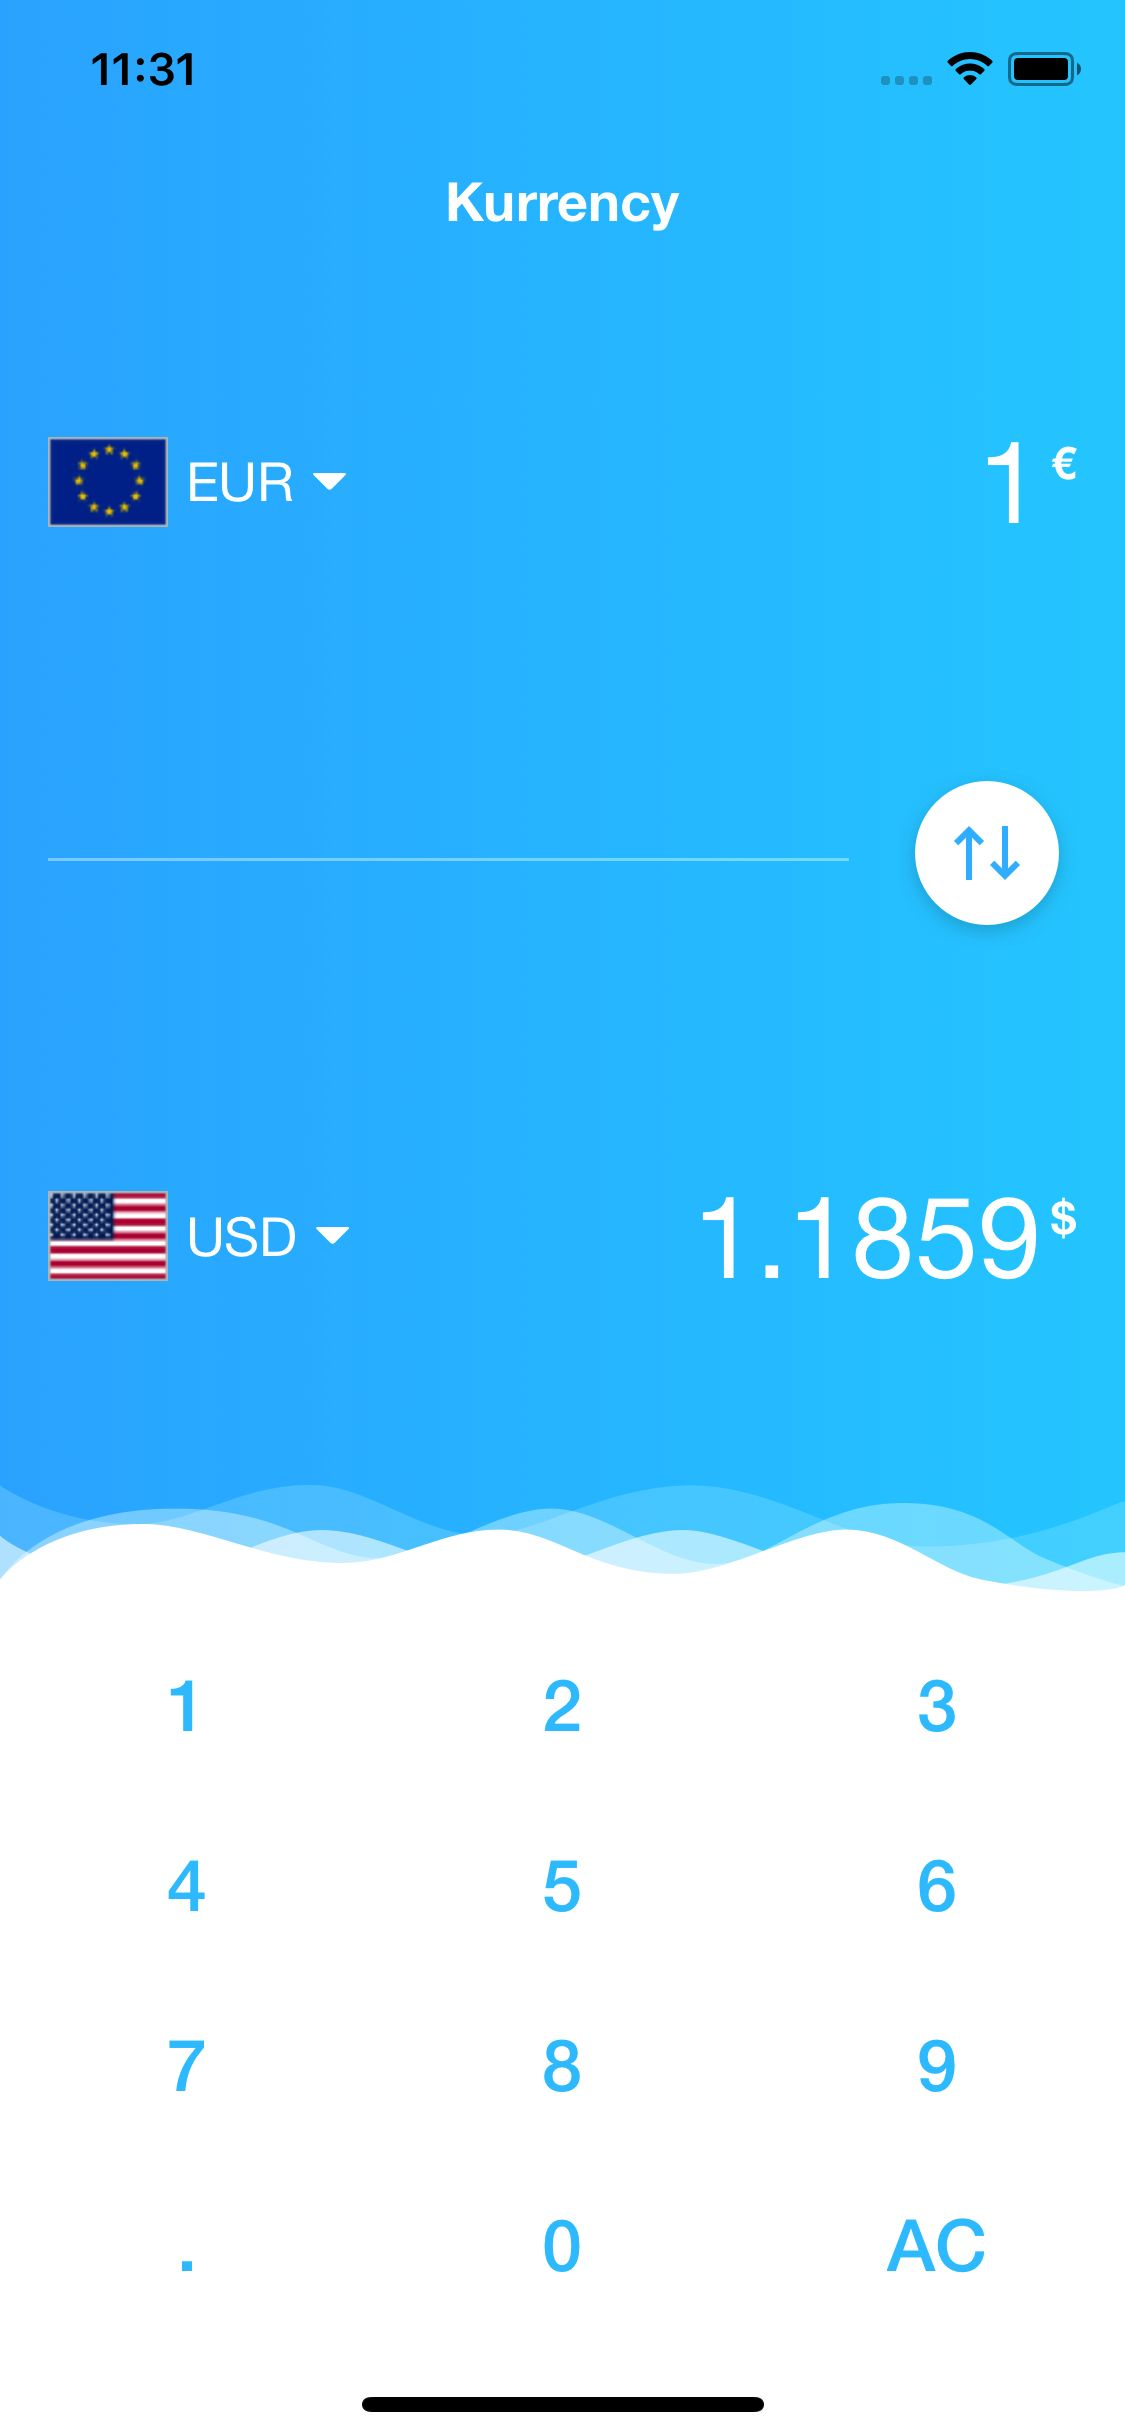 Kurrency - Currency Converter iOS Template Screenshot 2